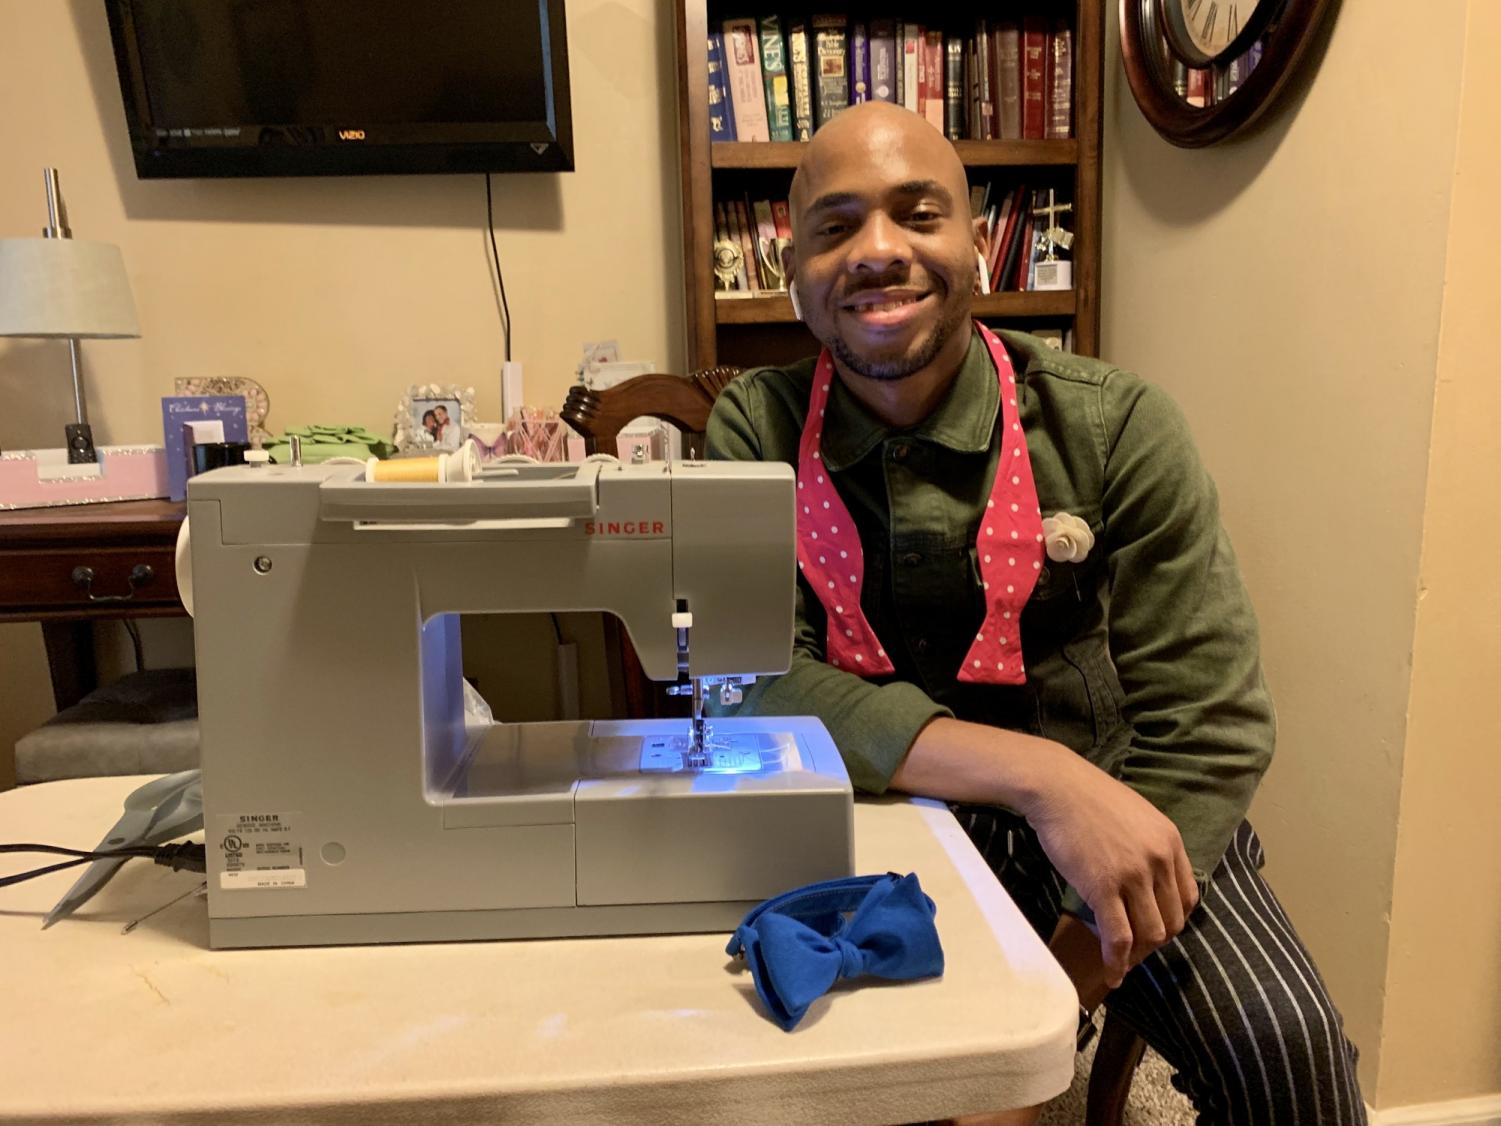 Aaron Brown is the founder and creator or BowFRESH Bowties. Photo credit: Meg Oldham